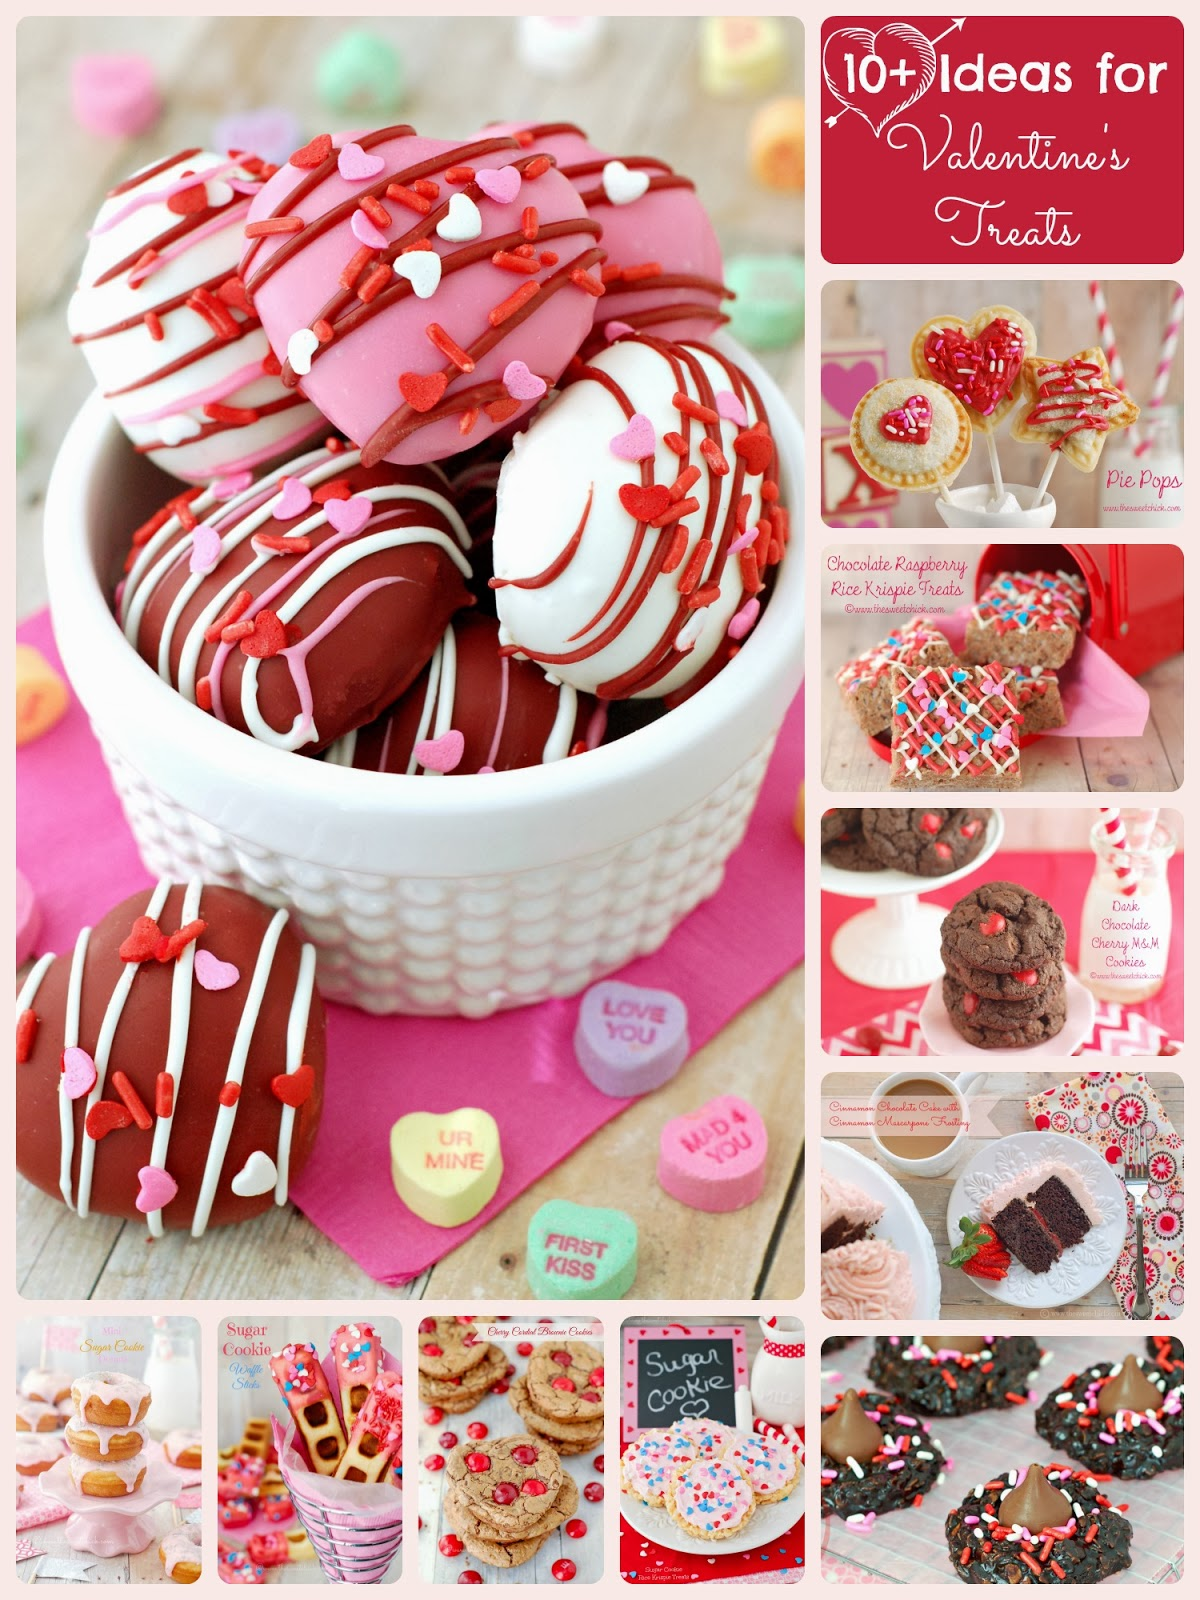 10+ Ideas for Valentine's Treats by The Sweet Chick